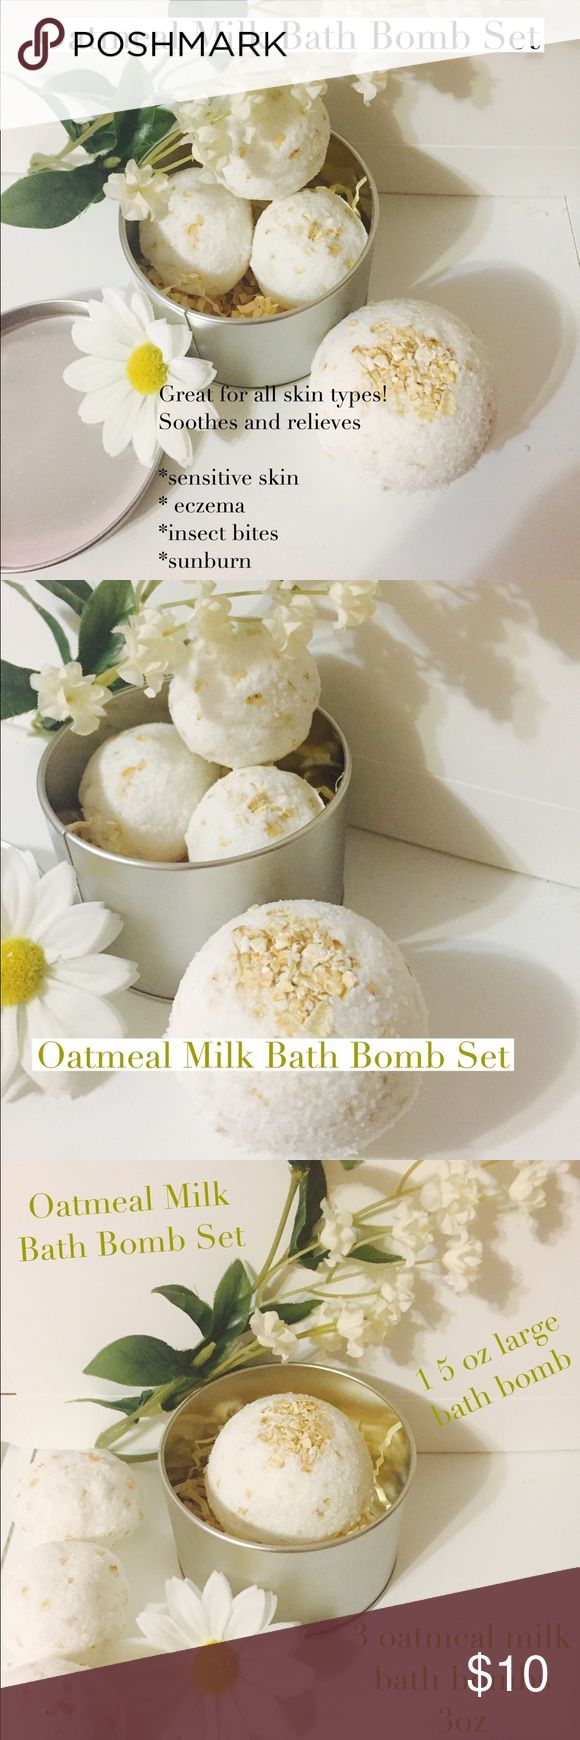 Oatmeal Milk Bath Bomb Set Oatmeal milk bath bomb set. A summertime essential for every household! Includes 1 large 5oz bath bomb & 3 standard size 3 oz bath bombs. These are gentle for all skin types. No added scents or colorants. Safe for babies children & adults ! These bath bombs relieve itchy skin, eczema insect stings,& sunburn. The oatmeal relieves the itch while the whole milk powder calms skin irritation & makes extra fizzing action. Drop in bath watch them fizz…